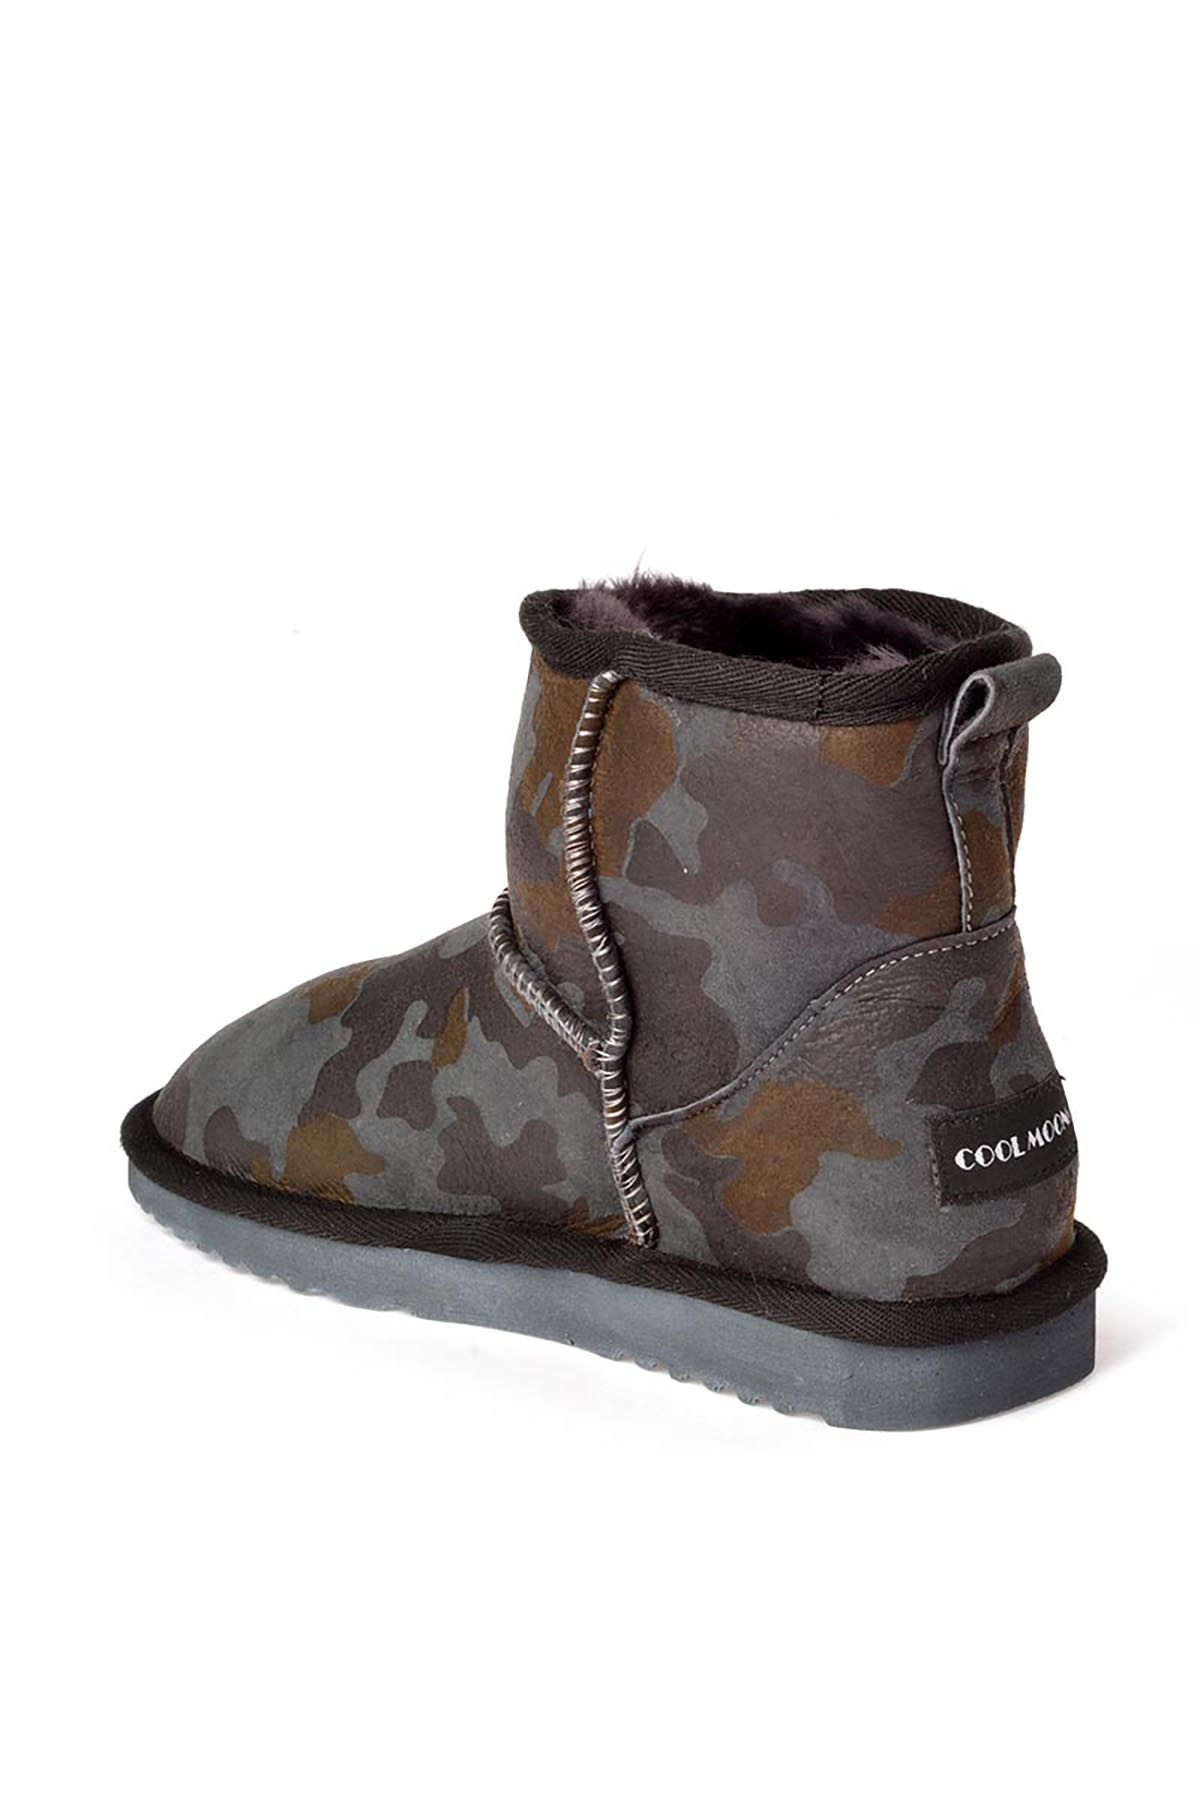 Cool Moon Women Uggs From Genuine Fur With Camouflage Pattern Dark Gray